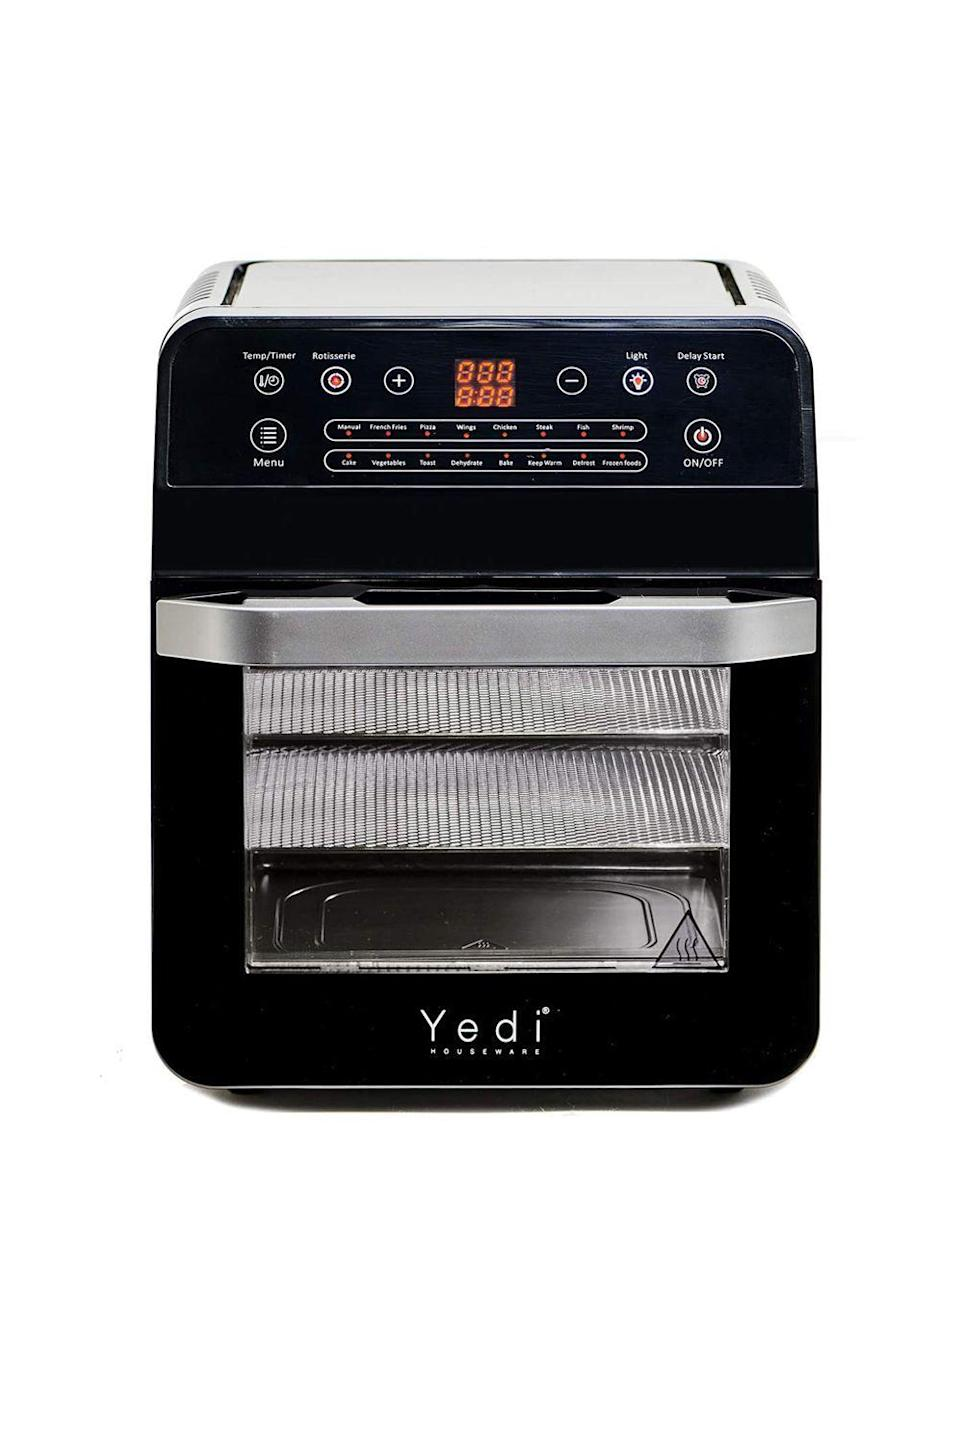 """<p><strong>Yedi Houseware</strong></p><p>amazon.com</p><p><strong>$148.95</strong></p><p><a href=""""https://www.amazon.com/dp/B07X2LRVS3?tag=syn-yahoo-20&ascsubtag=%5Bartid%7C10050.g.34621820%5Bsrc%7Cyahoo-us"""" rel=""""nofollow noopener"""" target=""""_blank"""" data-ylk=""""slk:Shop Now"""" class=""""link rapid-noclick-resp"""">Shop Now</a></p><p>Not only can this air fryer whip up healthier versions of breakfast indulgences (home fries, anyone?), but it's also a great gift for anyone who loves to snack throughout the day (so everyone, basically). Pop in fruit slices in the morning and have yummy dried treats to enjoy after lunch.</p>"""